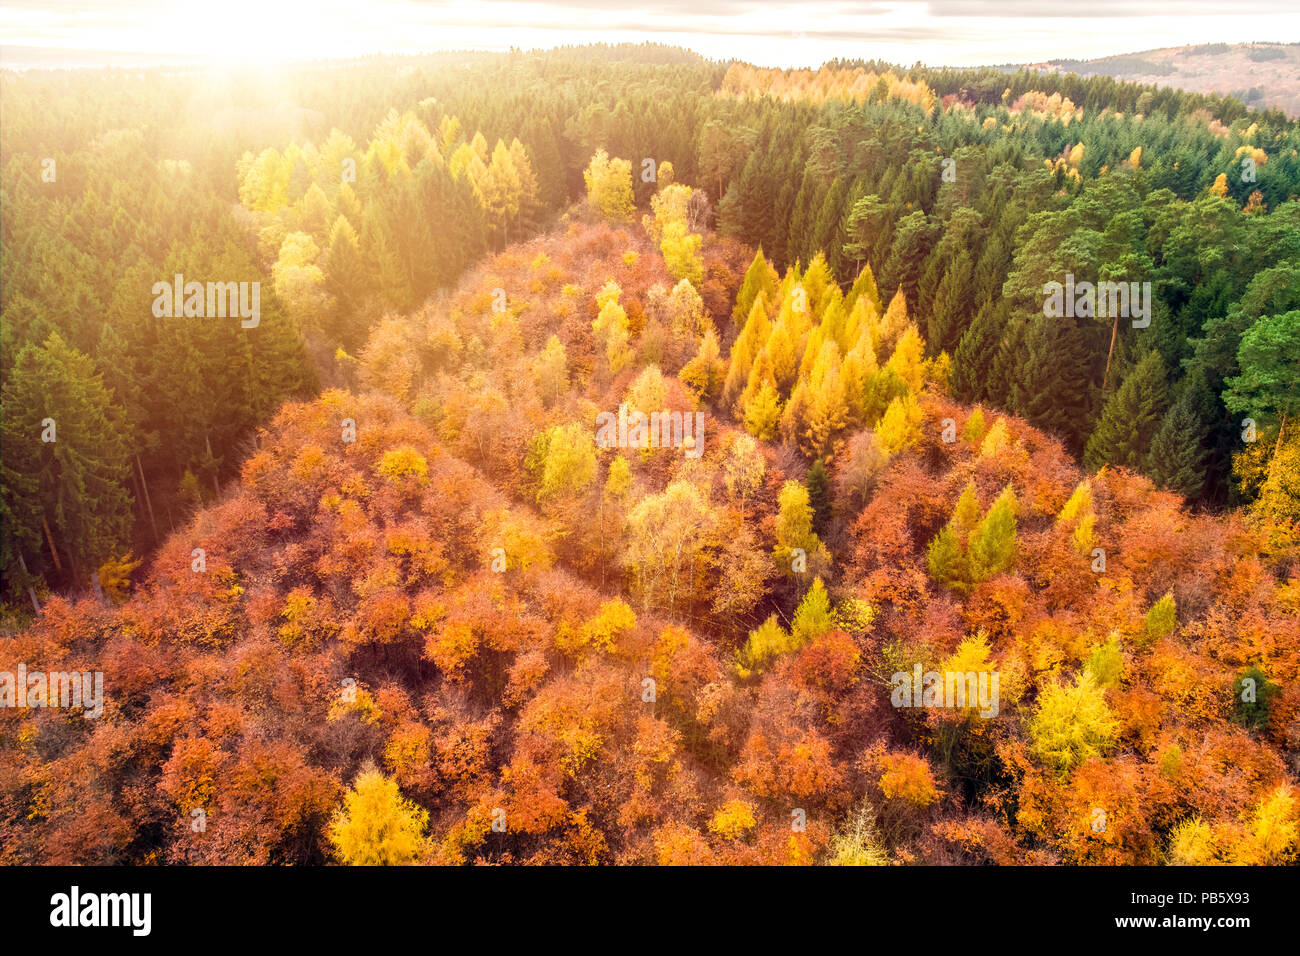 Autumn forest with colorful trees and leafs from above taken during drone flight as background and template - Stock Image